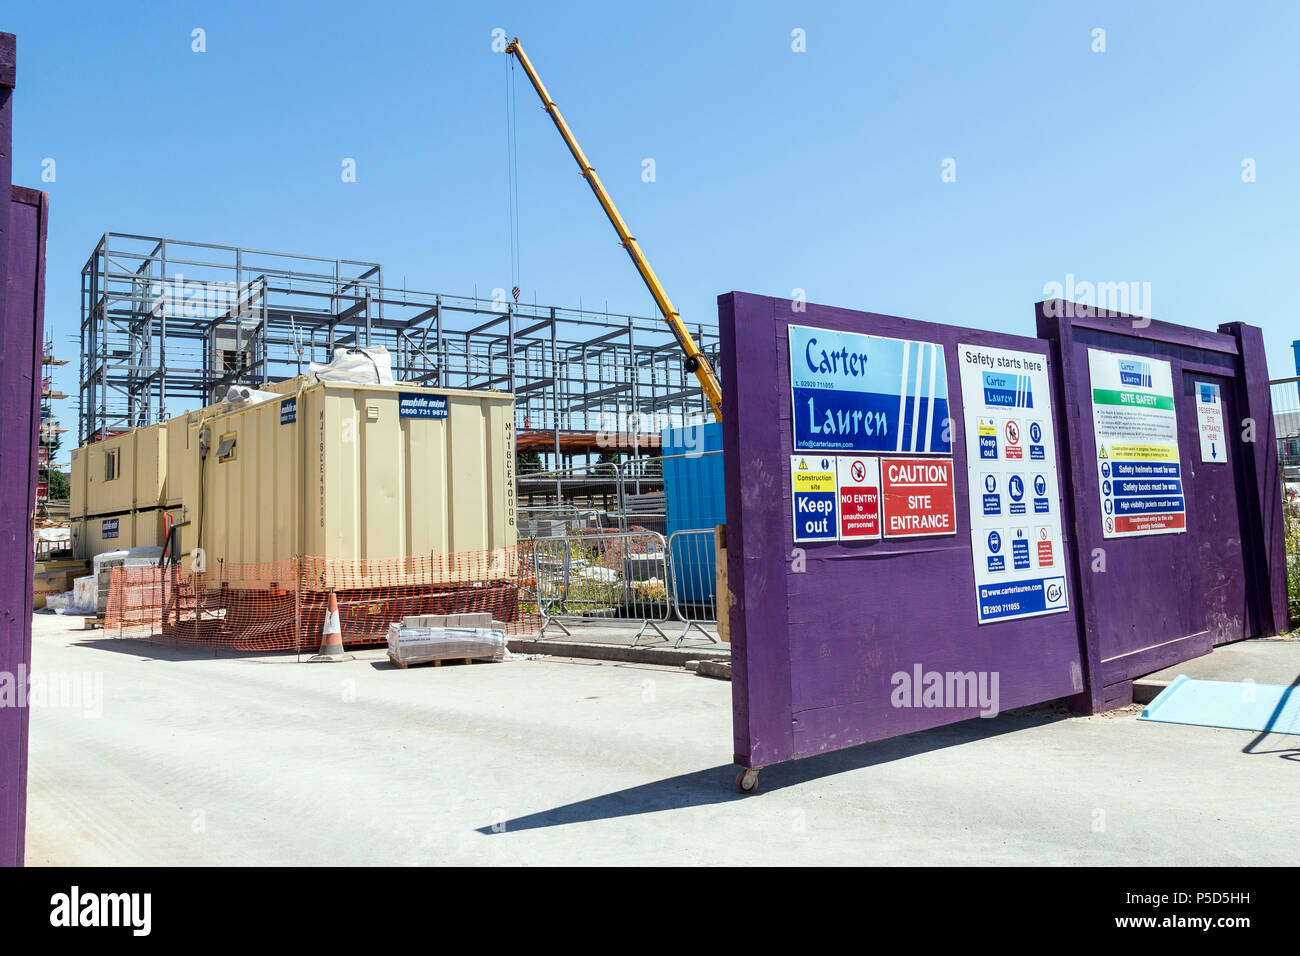 Carter Lauren Construction Ltd, As one of the largest privately owned South Wales based construction companies, Construction of commercial buildings,s - Stock Image